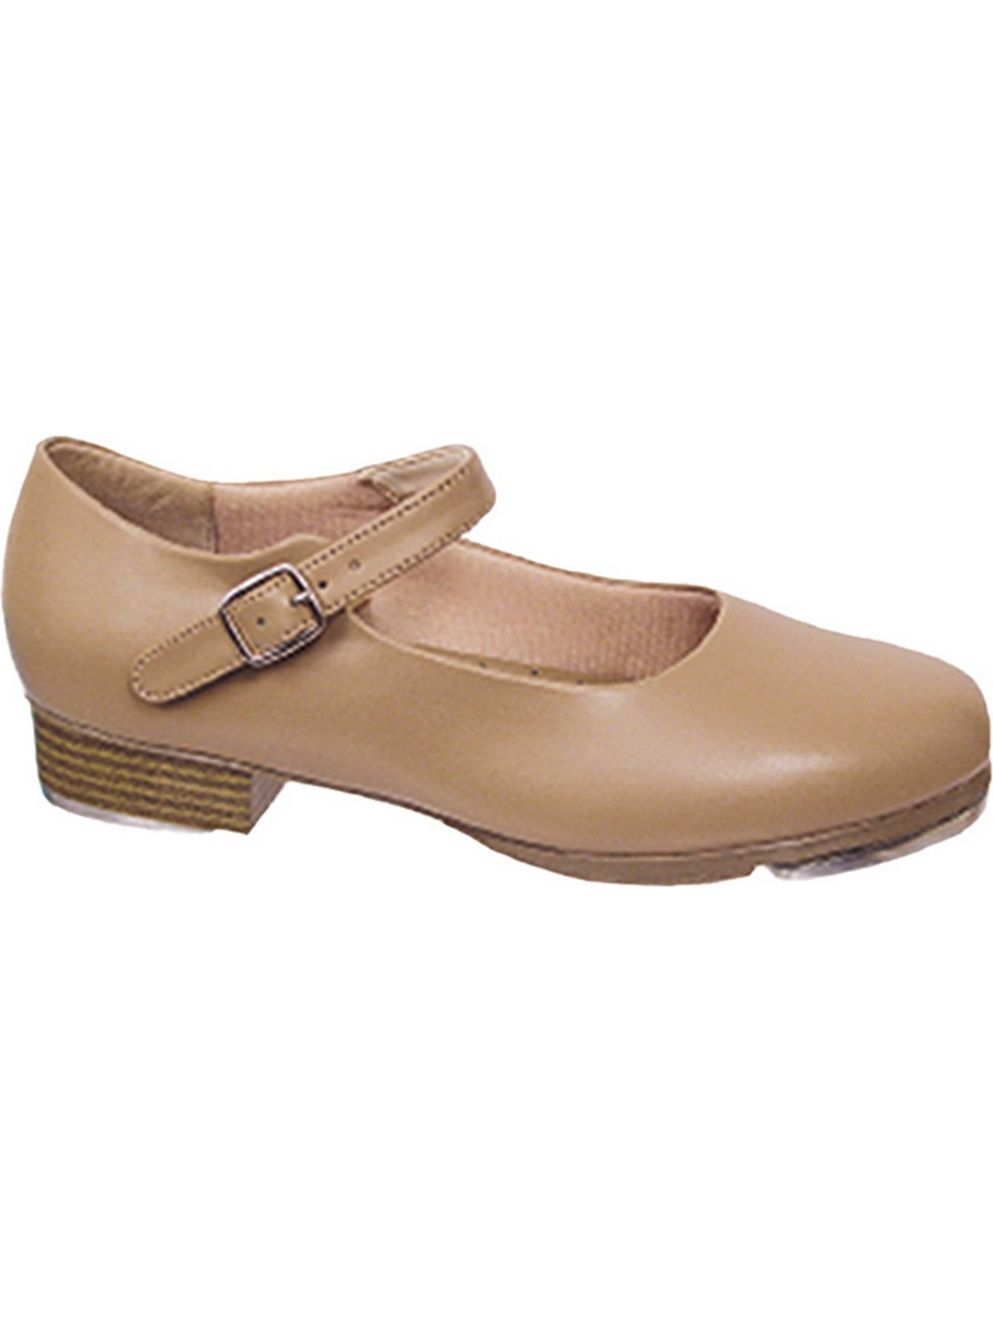 Beige Leather-Like Mary Jane Non-Skid Sole Rhythm Tones Tap Shoes 5-11 Womens